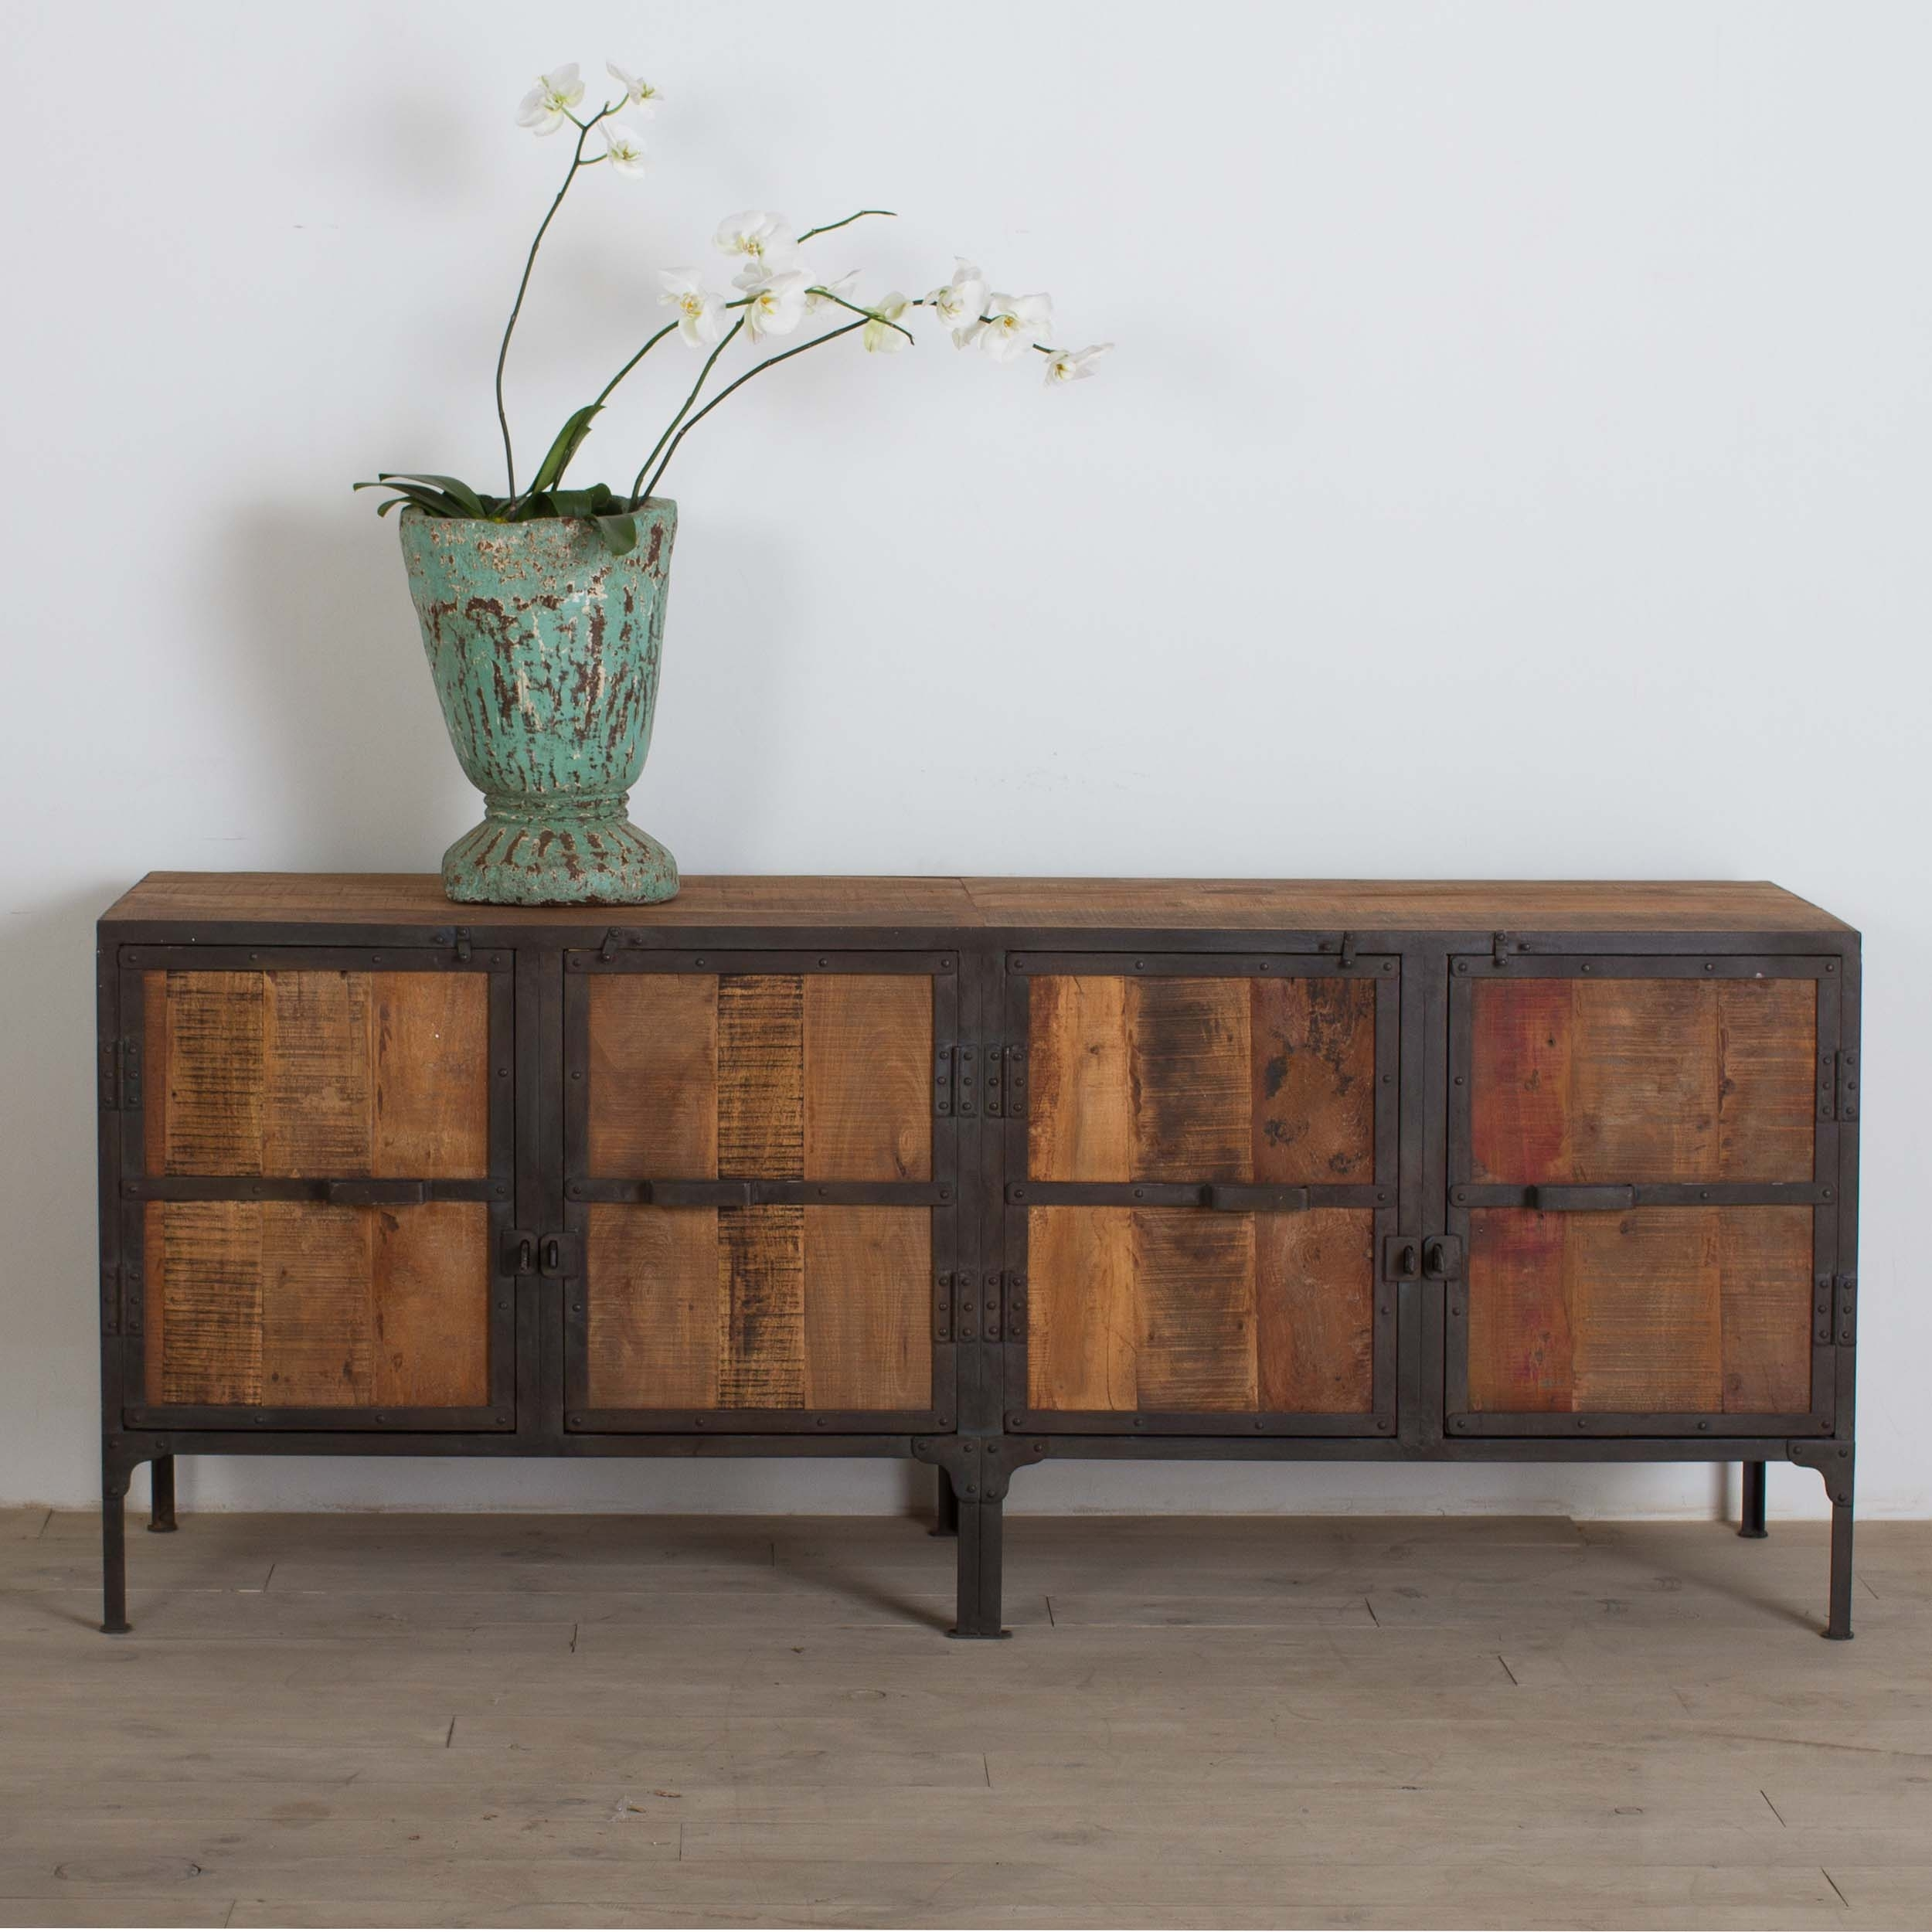 Shop Handmade Cg Sparks Handmade Hyderabad Reclaimed Wood And Metal Within Current White Wash Carved Door Jumbo Sideboards (View 20 of 20)